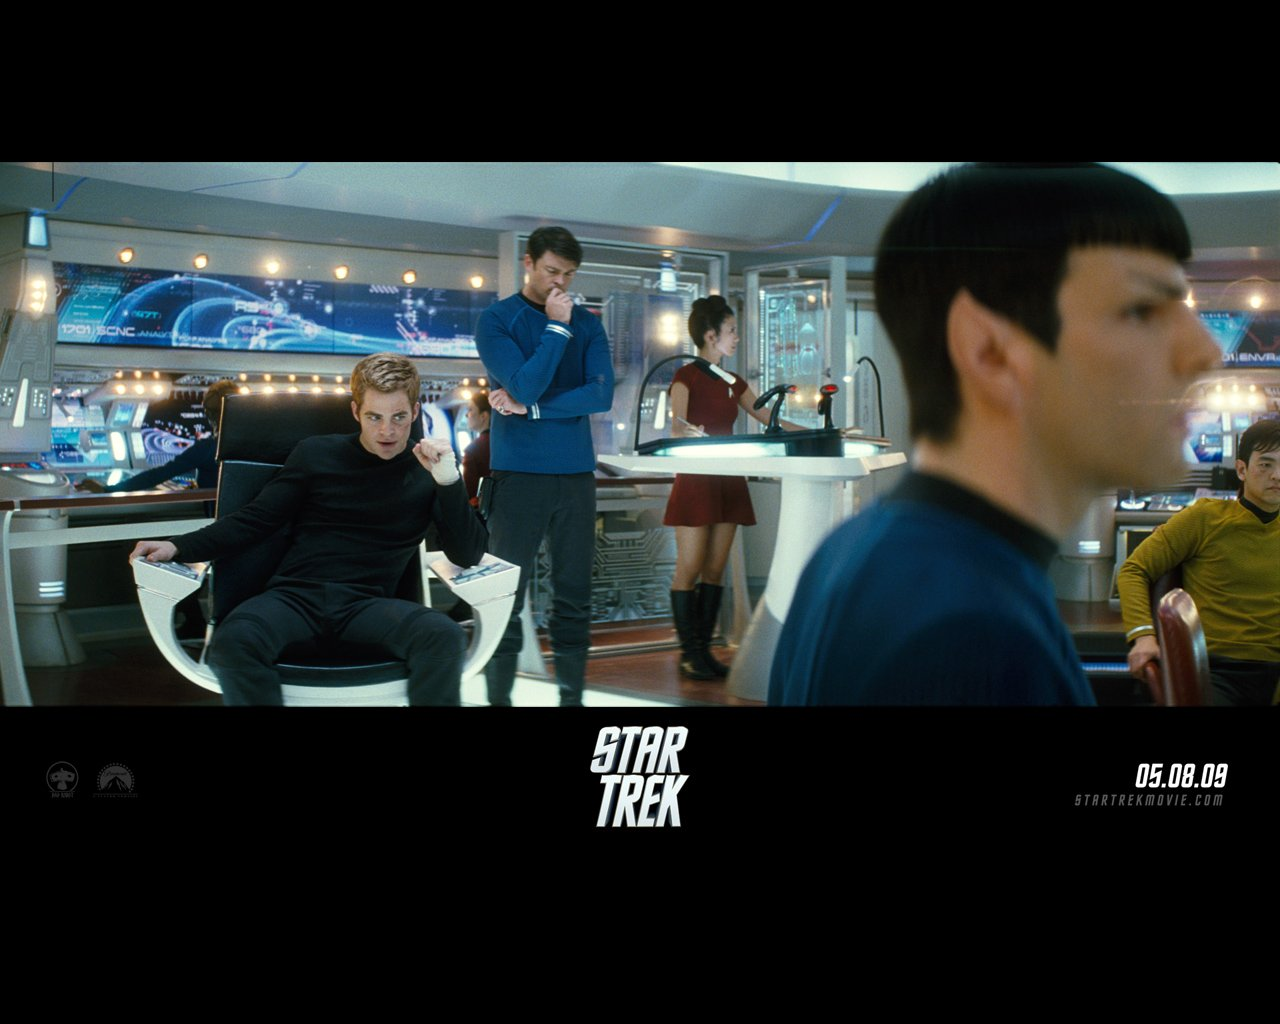 Star Trek 2009 wallpaper   FreeMovieWallpapersorg 1280x1024